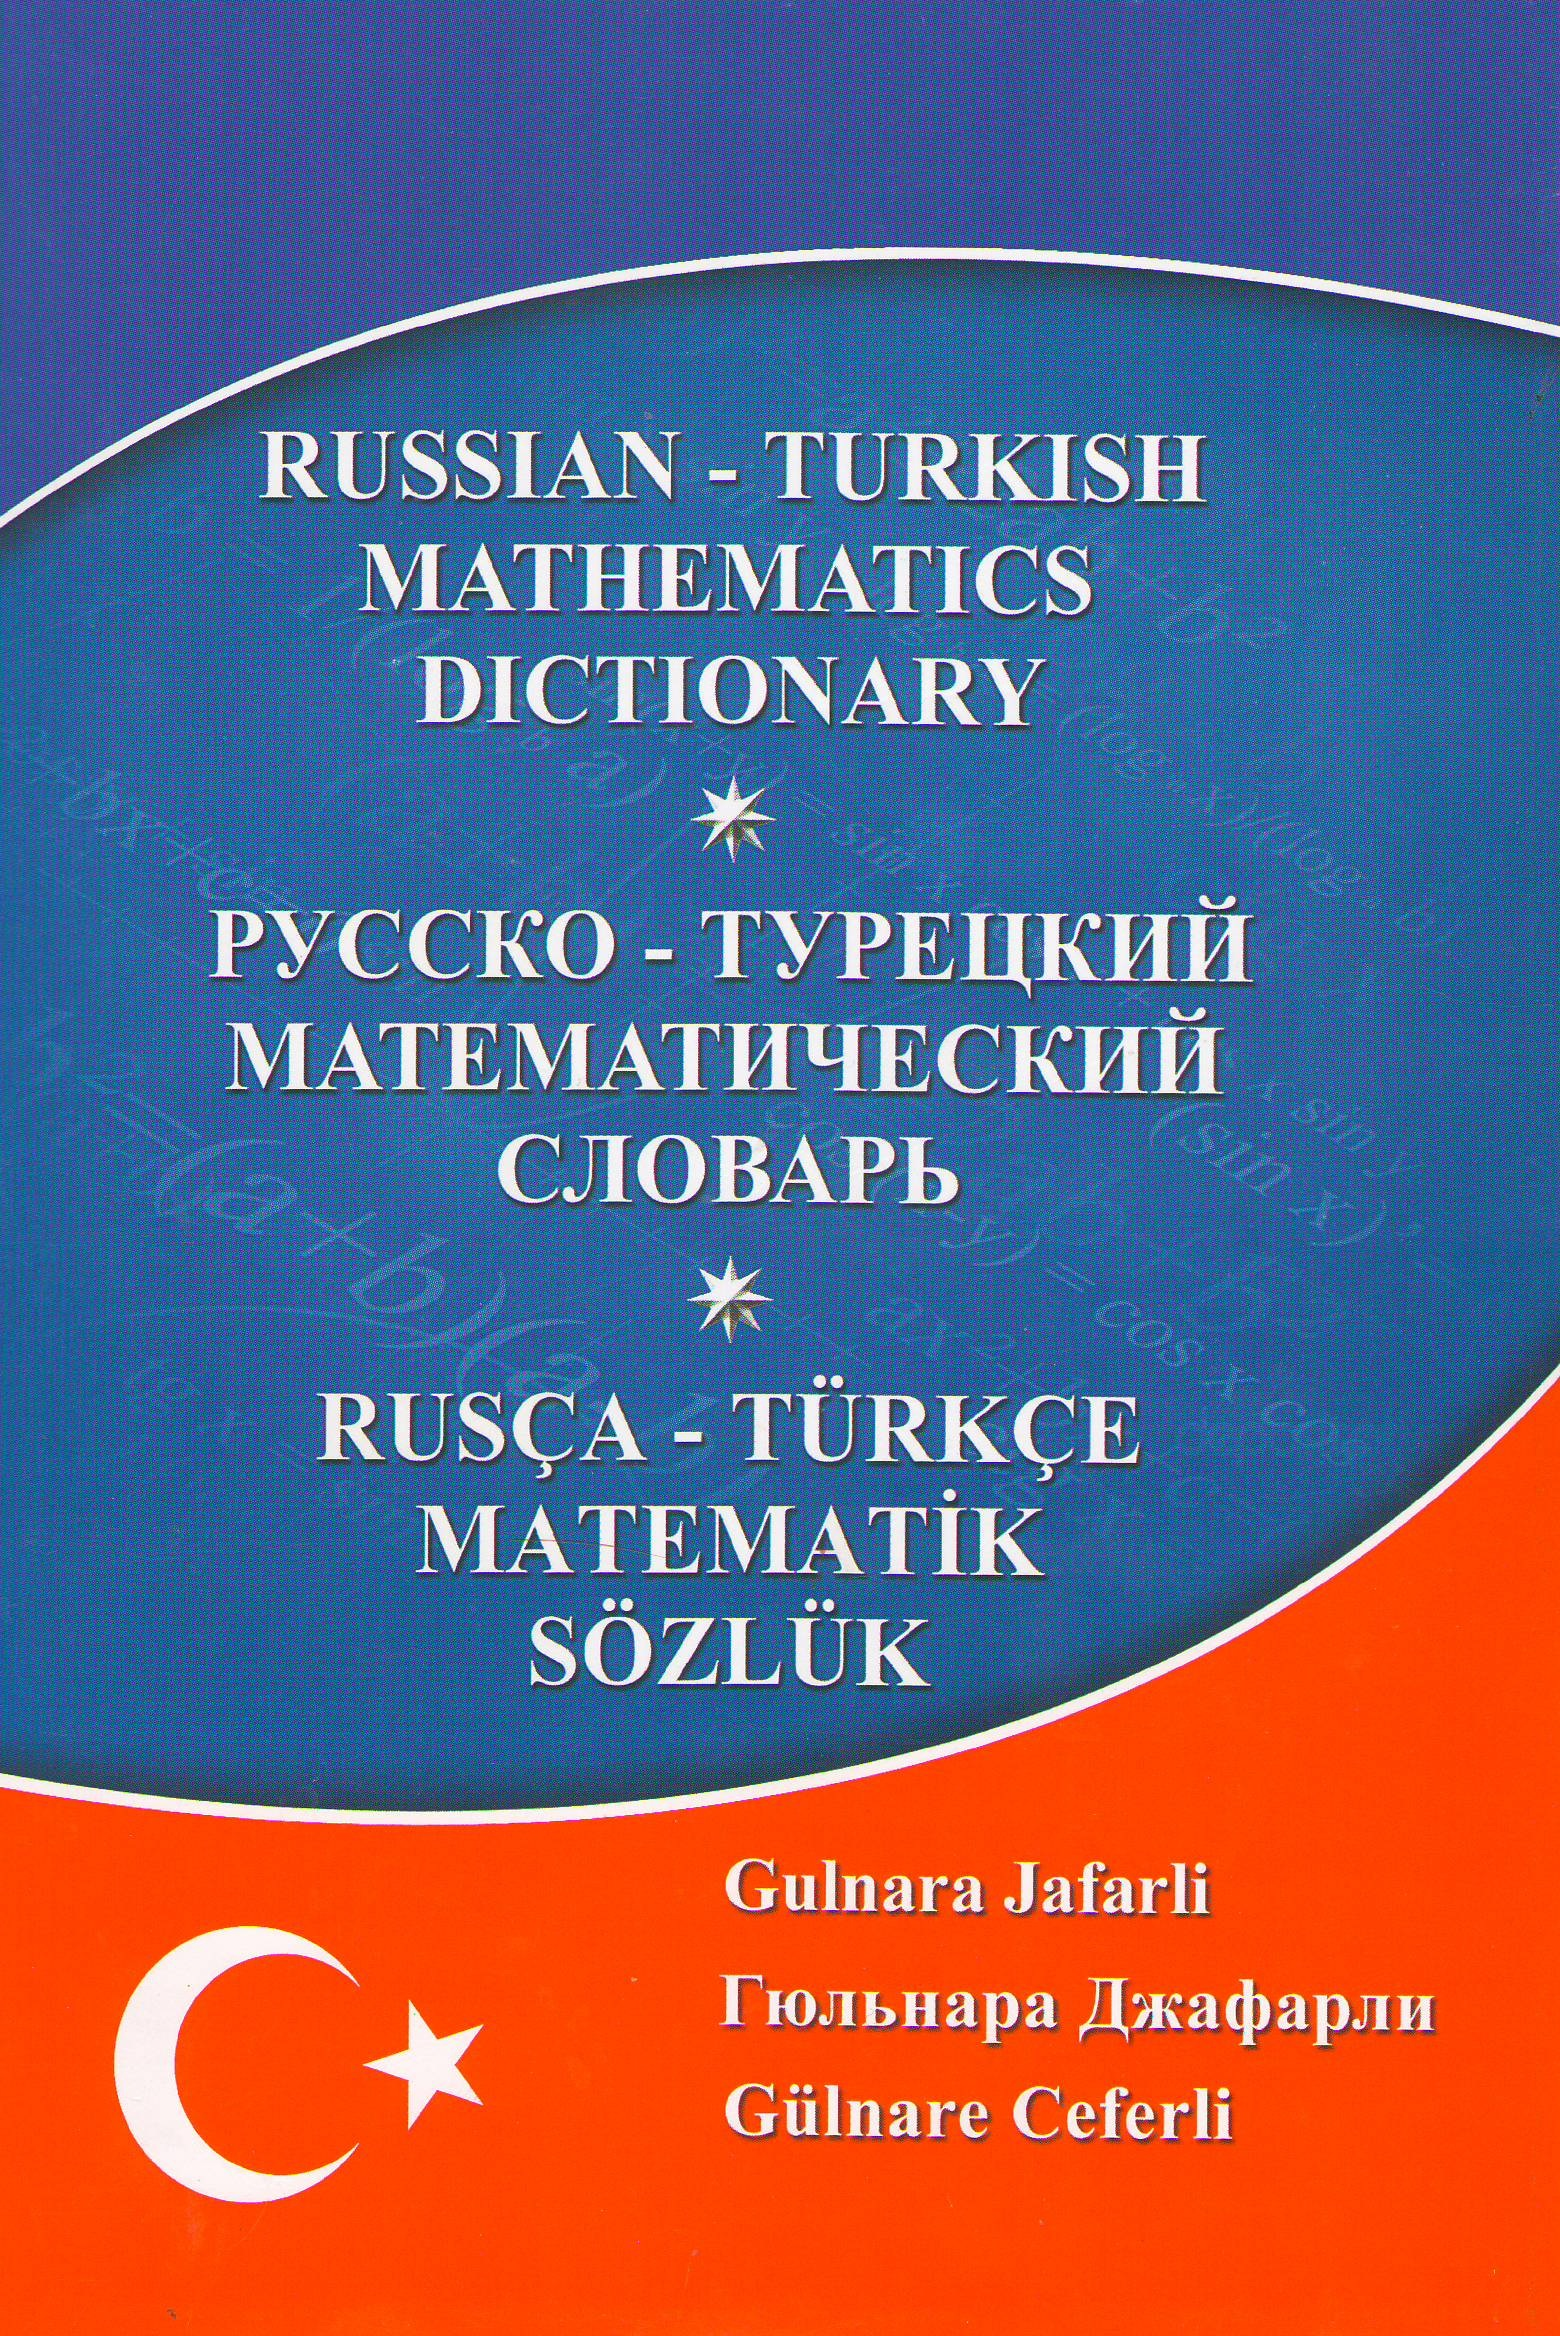 New Russian-Turkish Mathematics Dictionary Printed